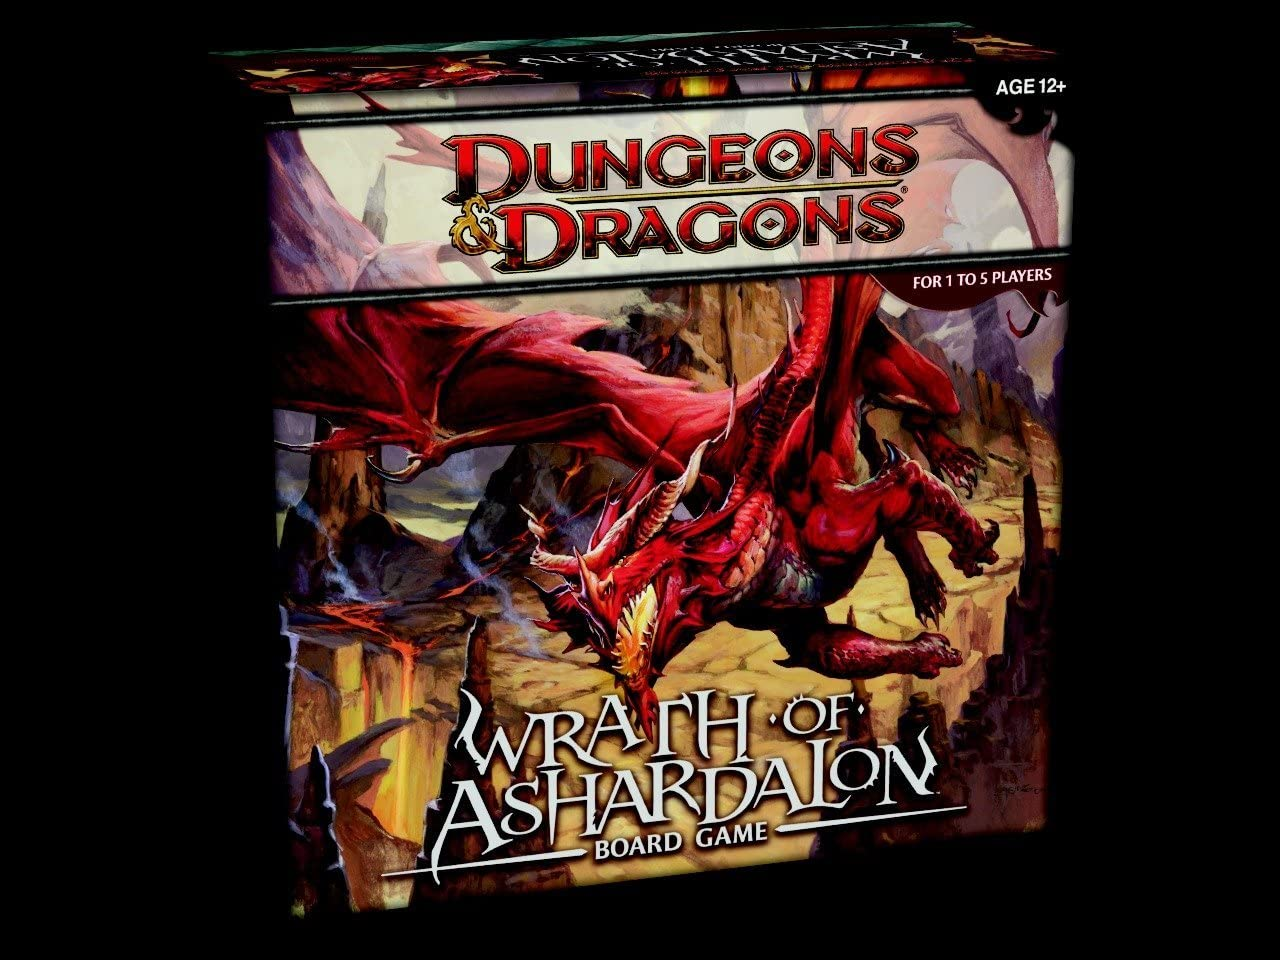 Dungeons & Dragons D&D Tablero: Wrath of ASHARDALON Juego en ingl ...